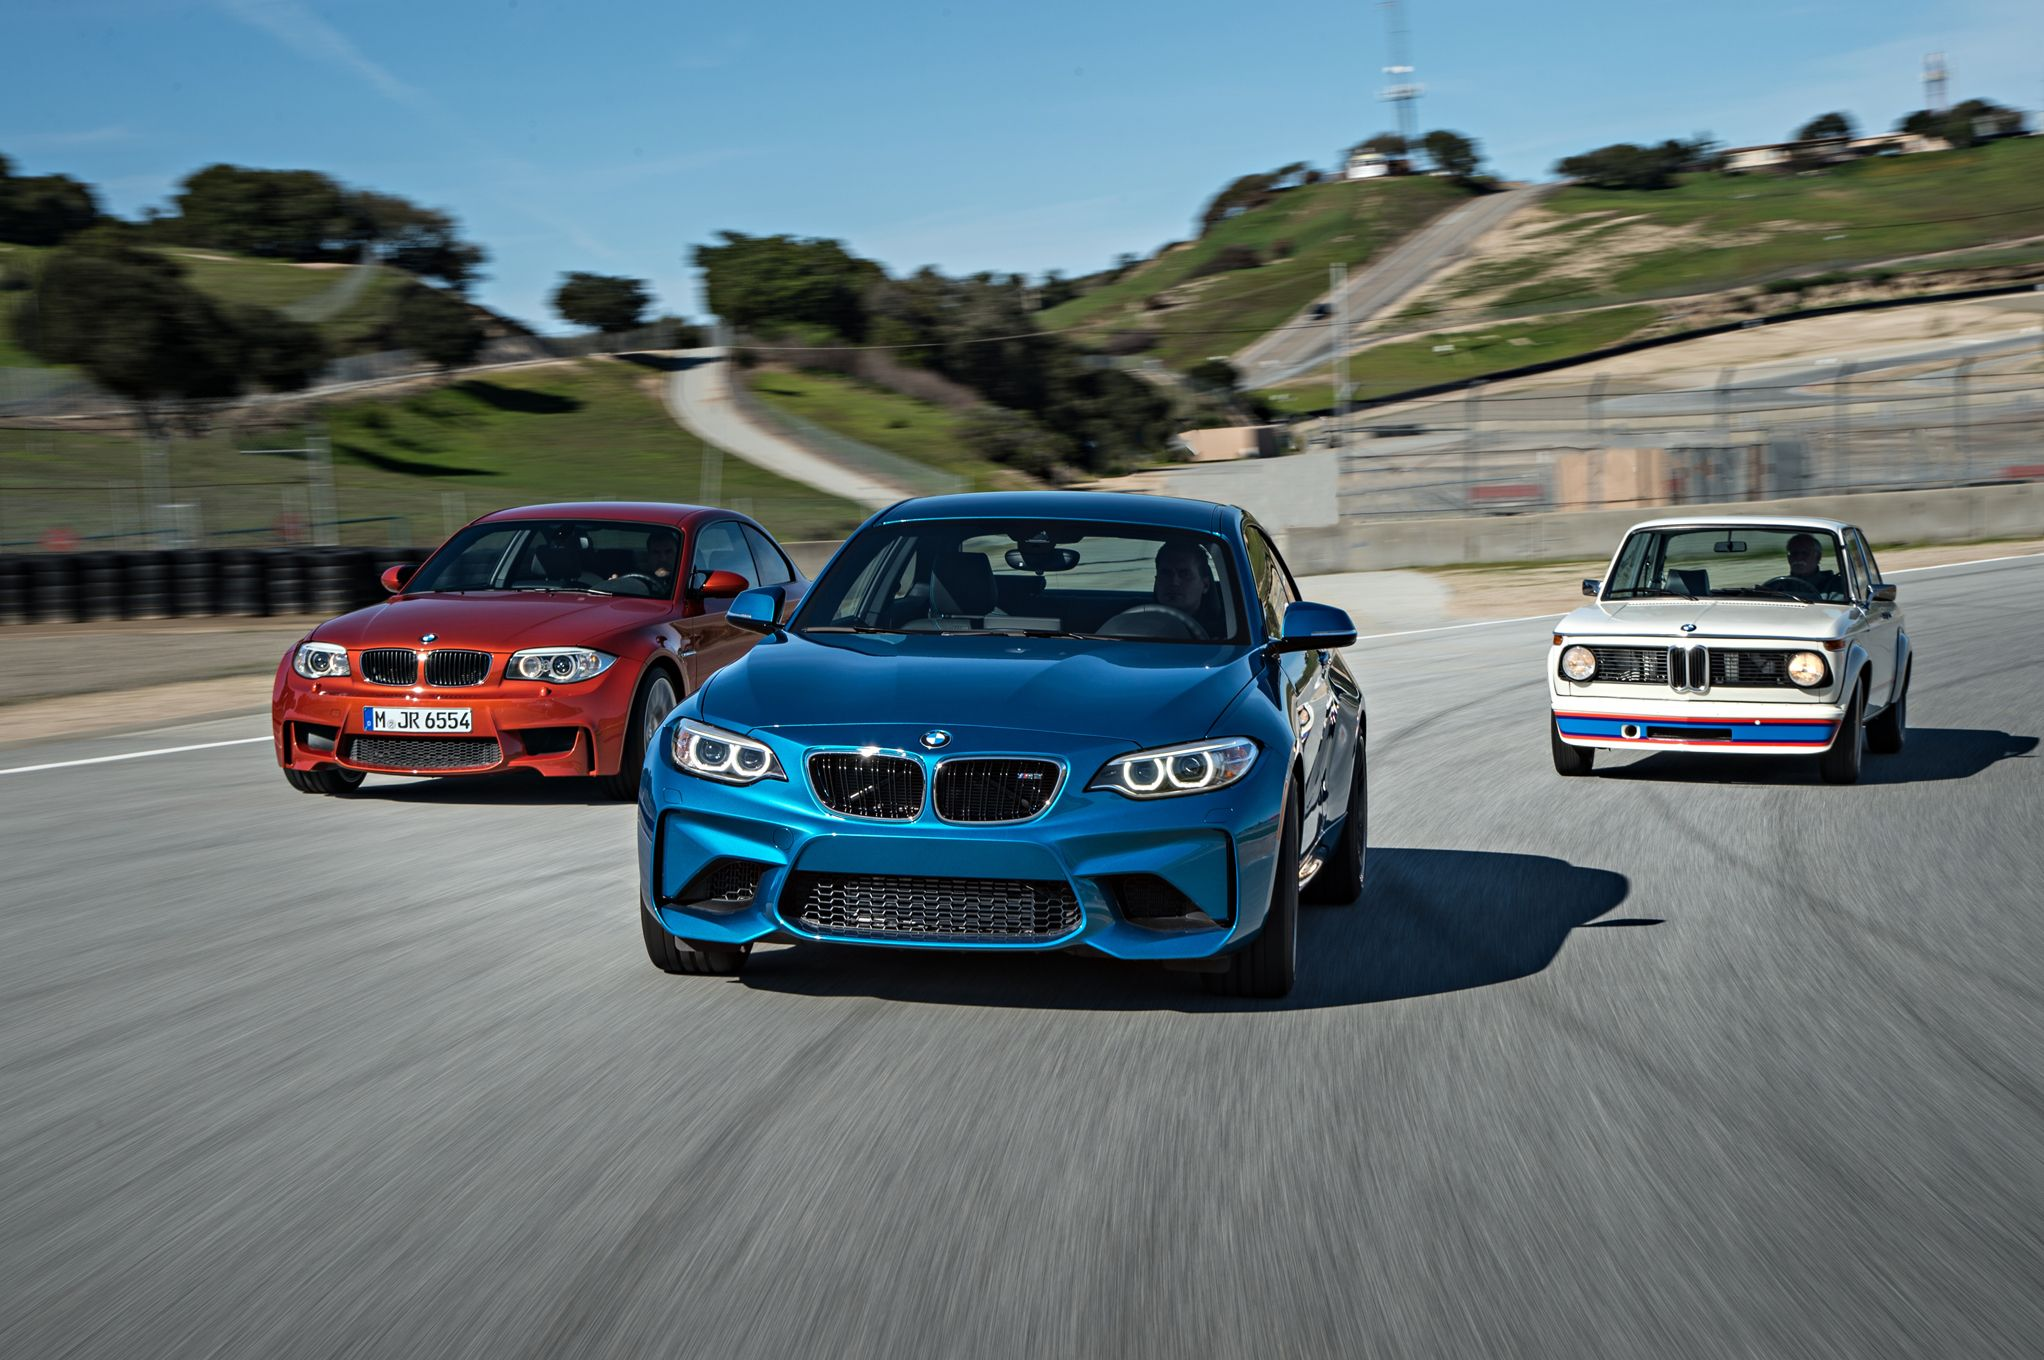 2016-bmw-m2-bmw-2002-turbo-and-bmw-1-series-m-coupe-front-end-in-motion.jpg